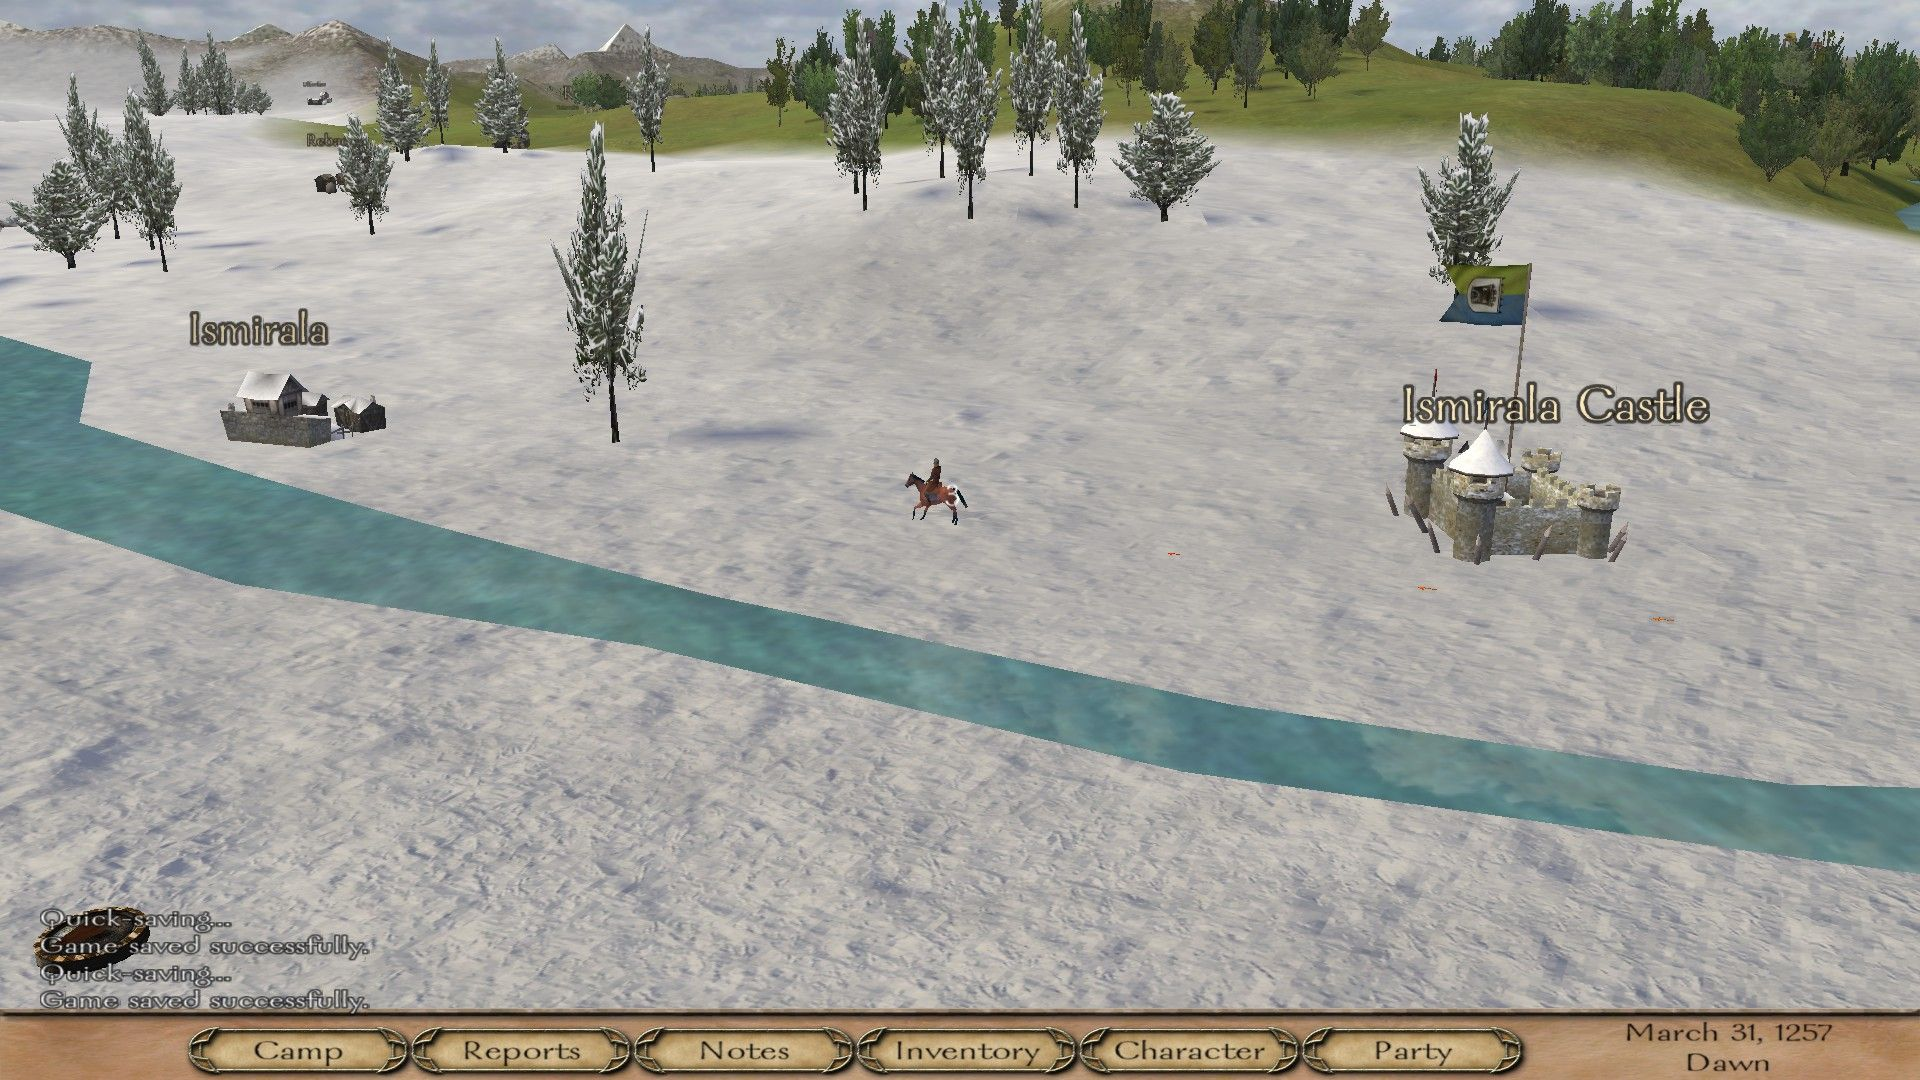 essay on logic mount and blade 5 games like mount and blade for iphone / ipad if you want to play a game like mount and blade on your ios system, so on iphone or ipad, here is a list of five games that may fit 50% similar.